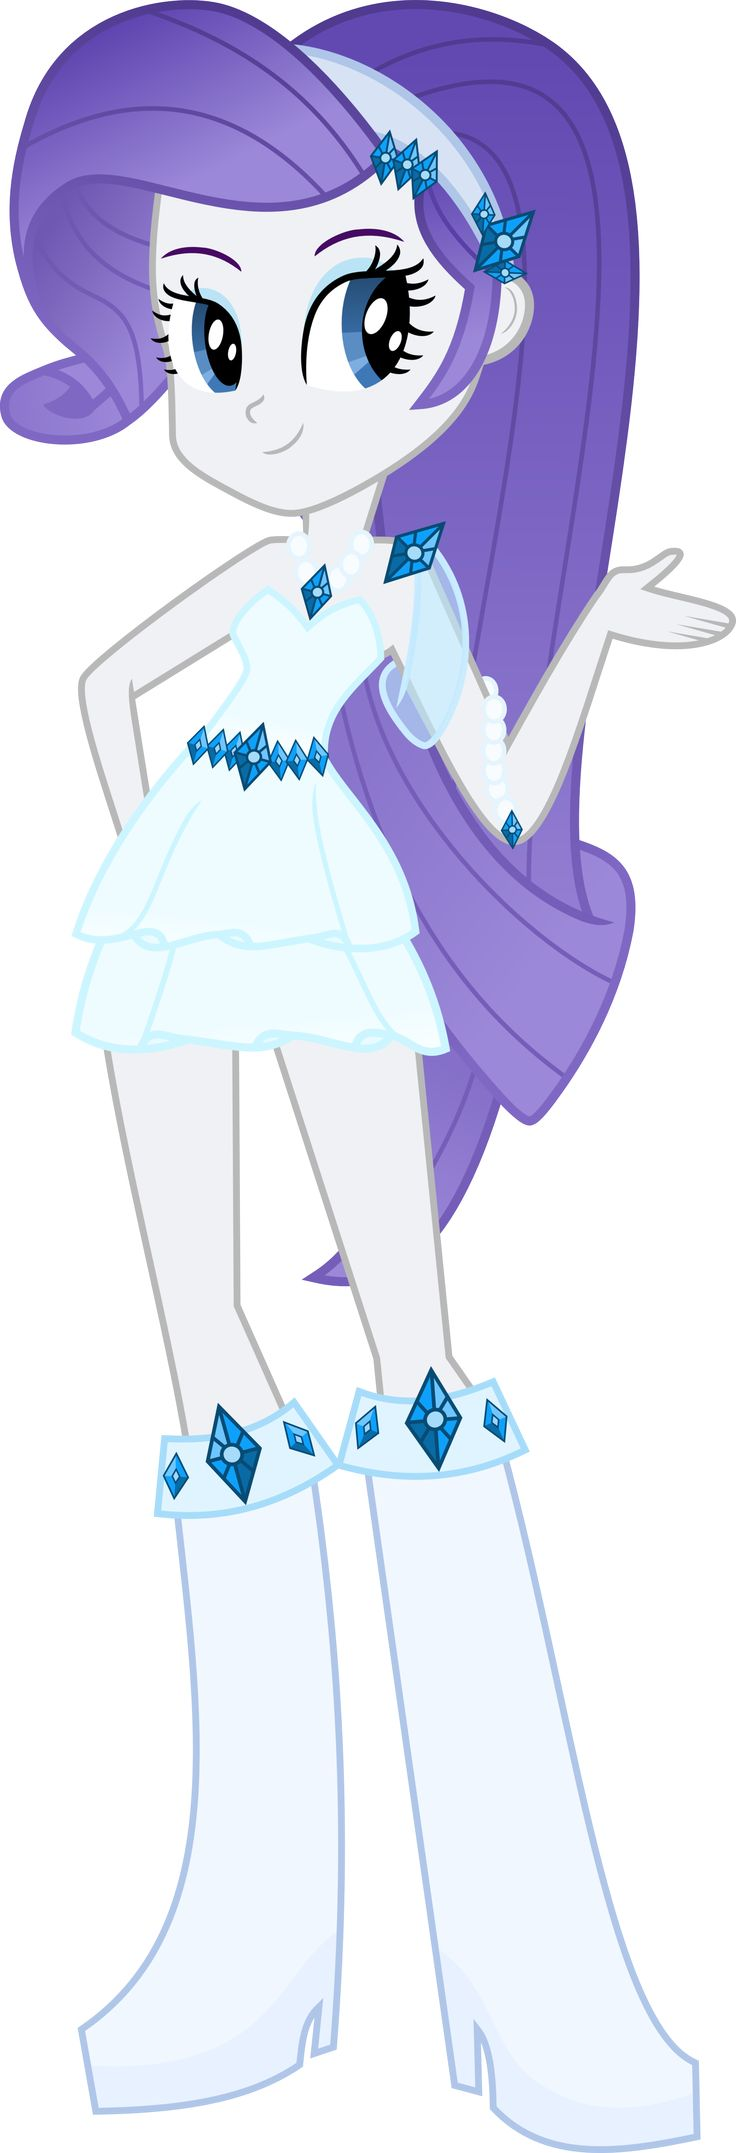 Rarity Equestria Girls by aqua-pony.deviantart.com on @deviantART